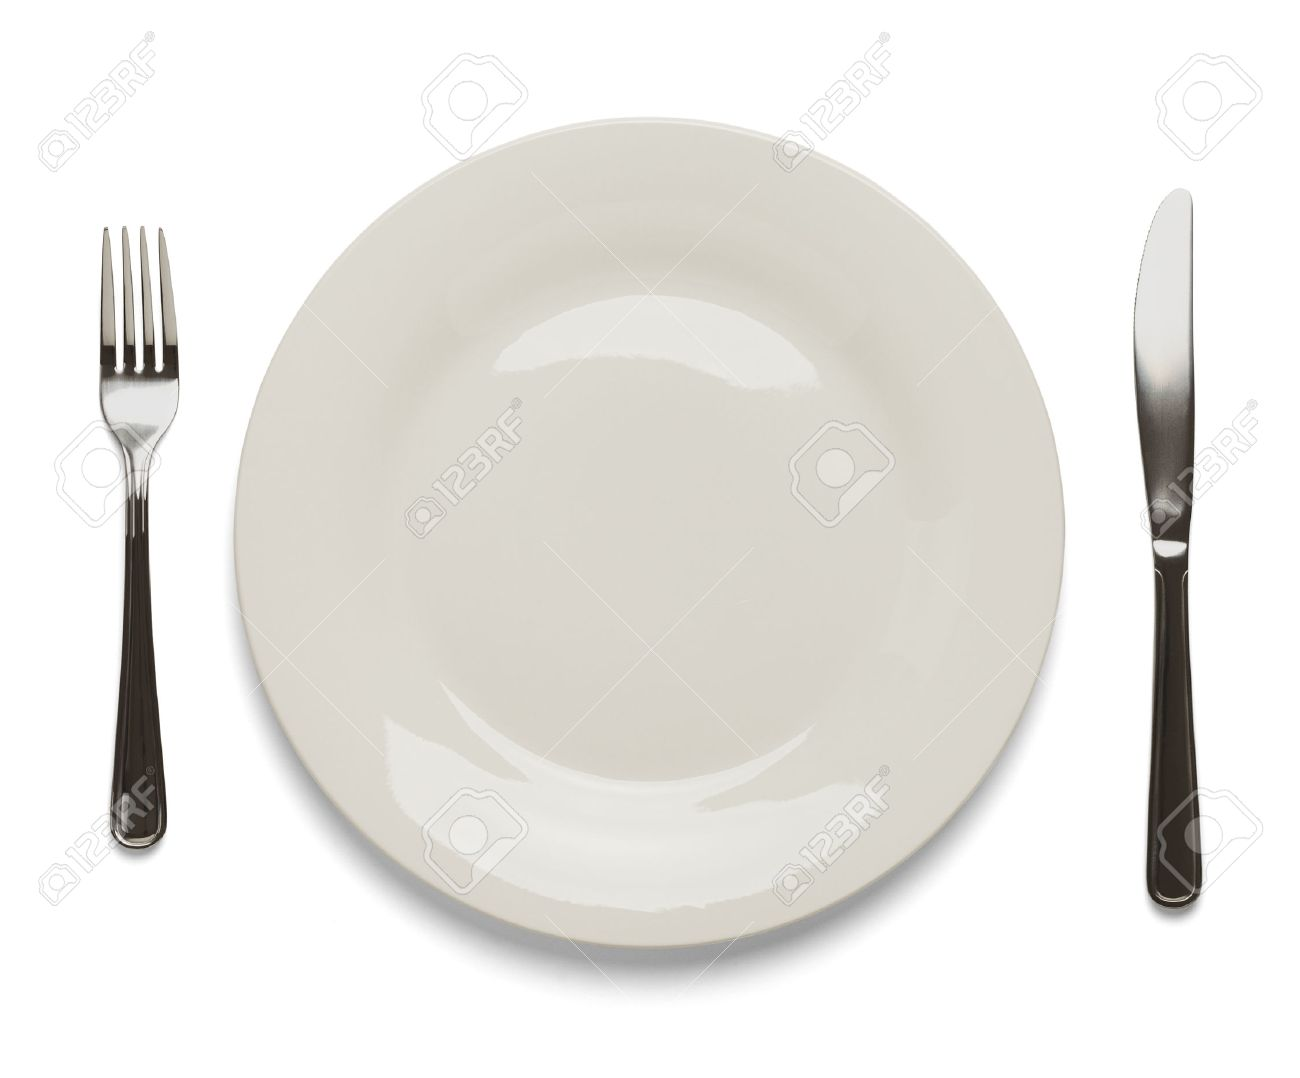 Dinner Plate With Silverware Isolated On White Background Stock Photo Picture And Royalty Free Image Image 38248625